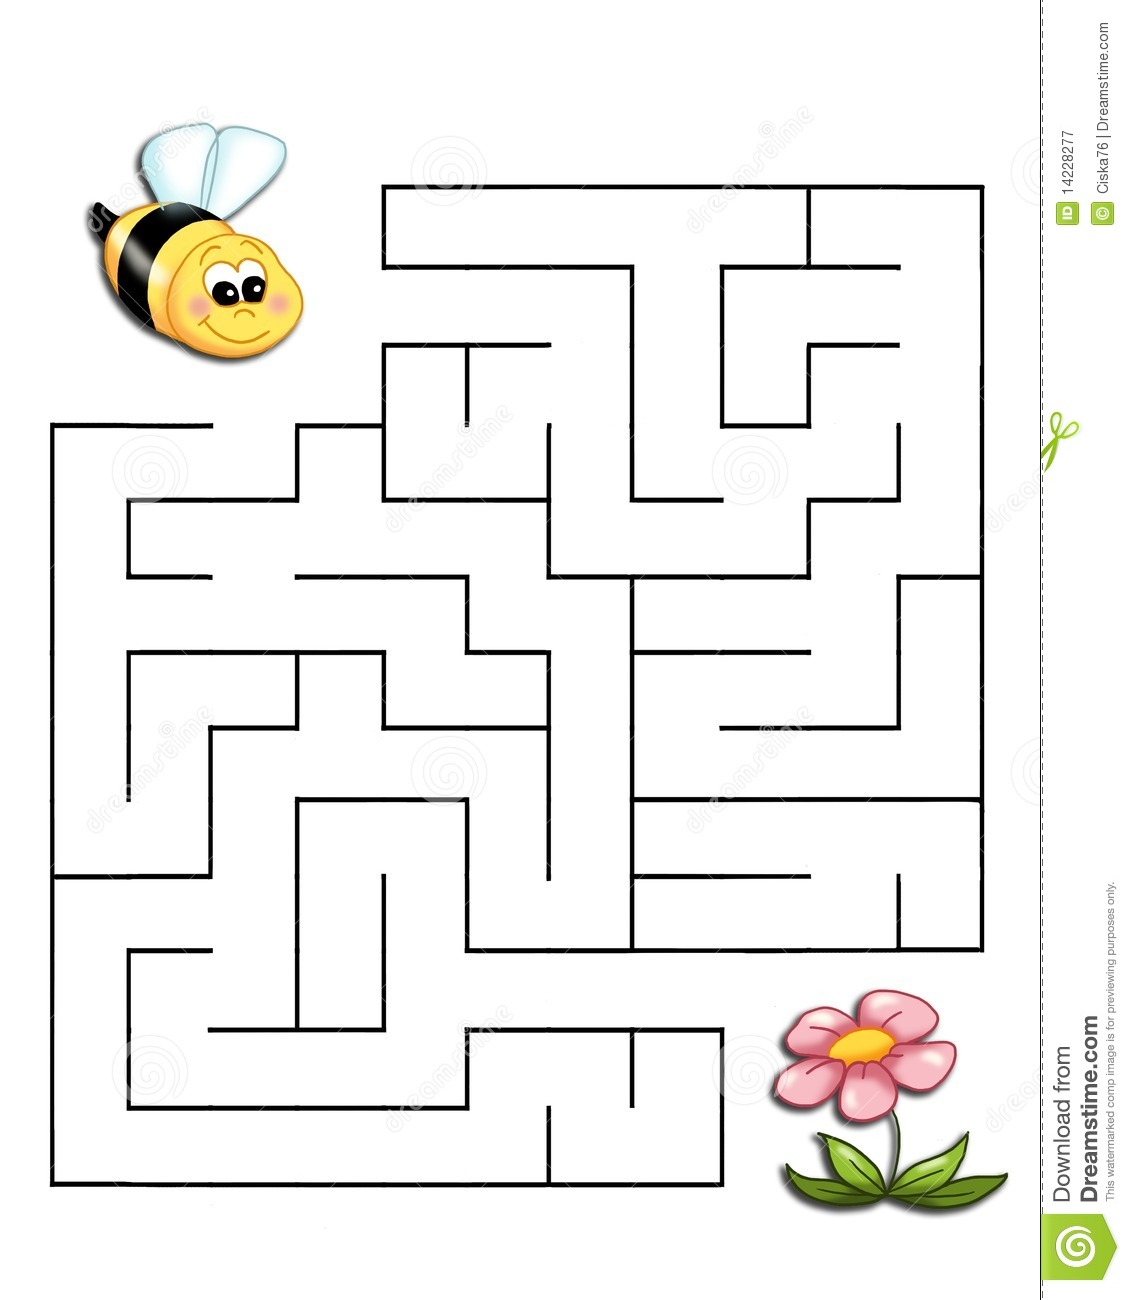 Game 19 The Bee Reaches The Flower Royalty Free Stock